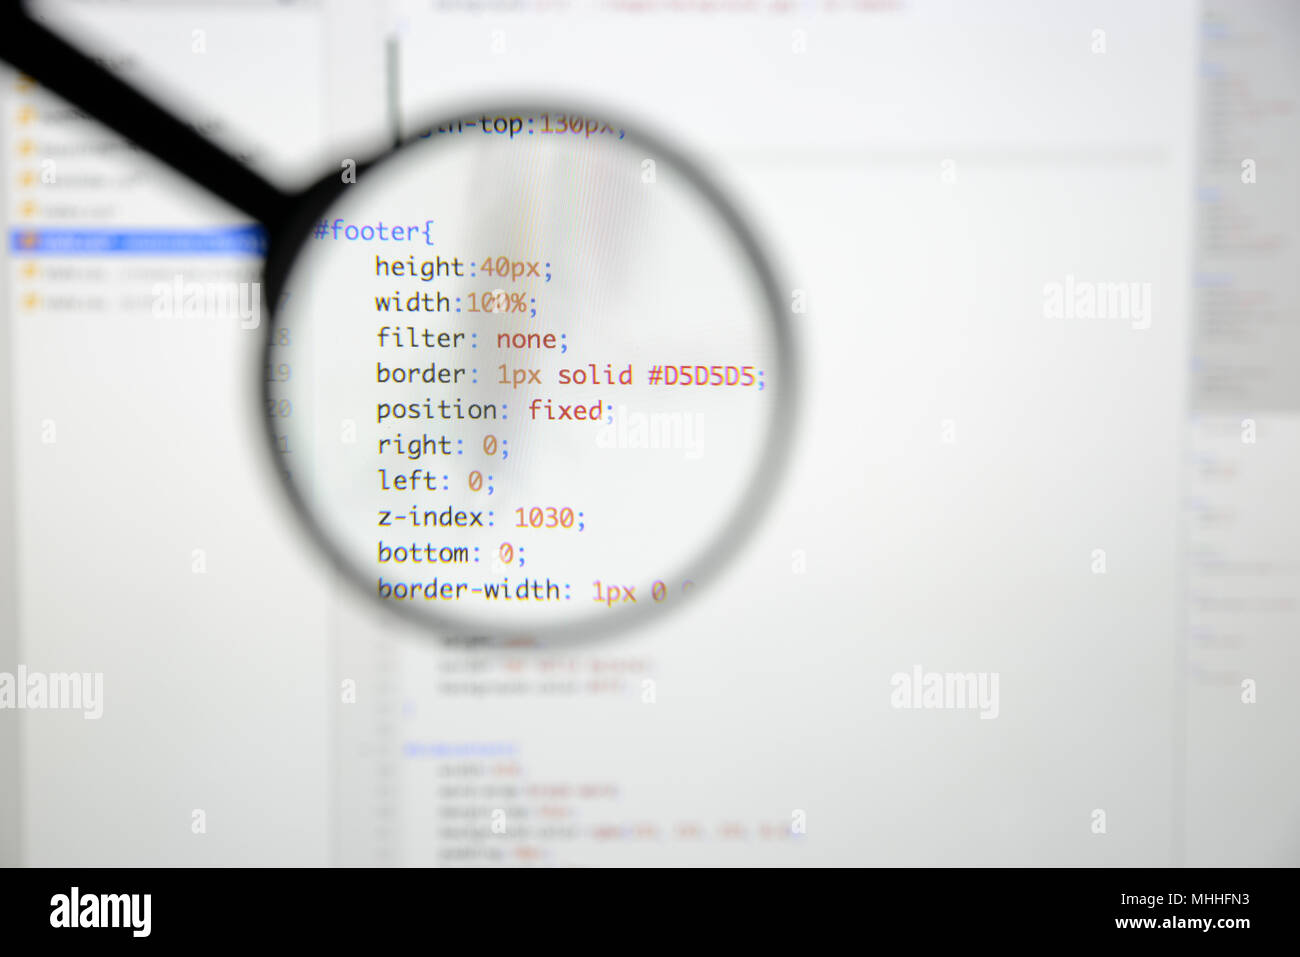 Real css code developing screen. Programing workflow abstract algorithm concept. Lines of css code visible under magnifying lens. - Stock Image